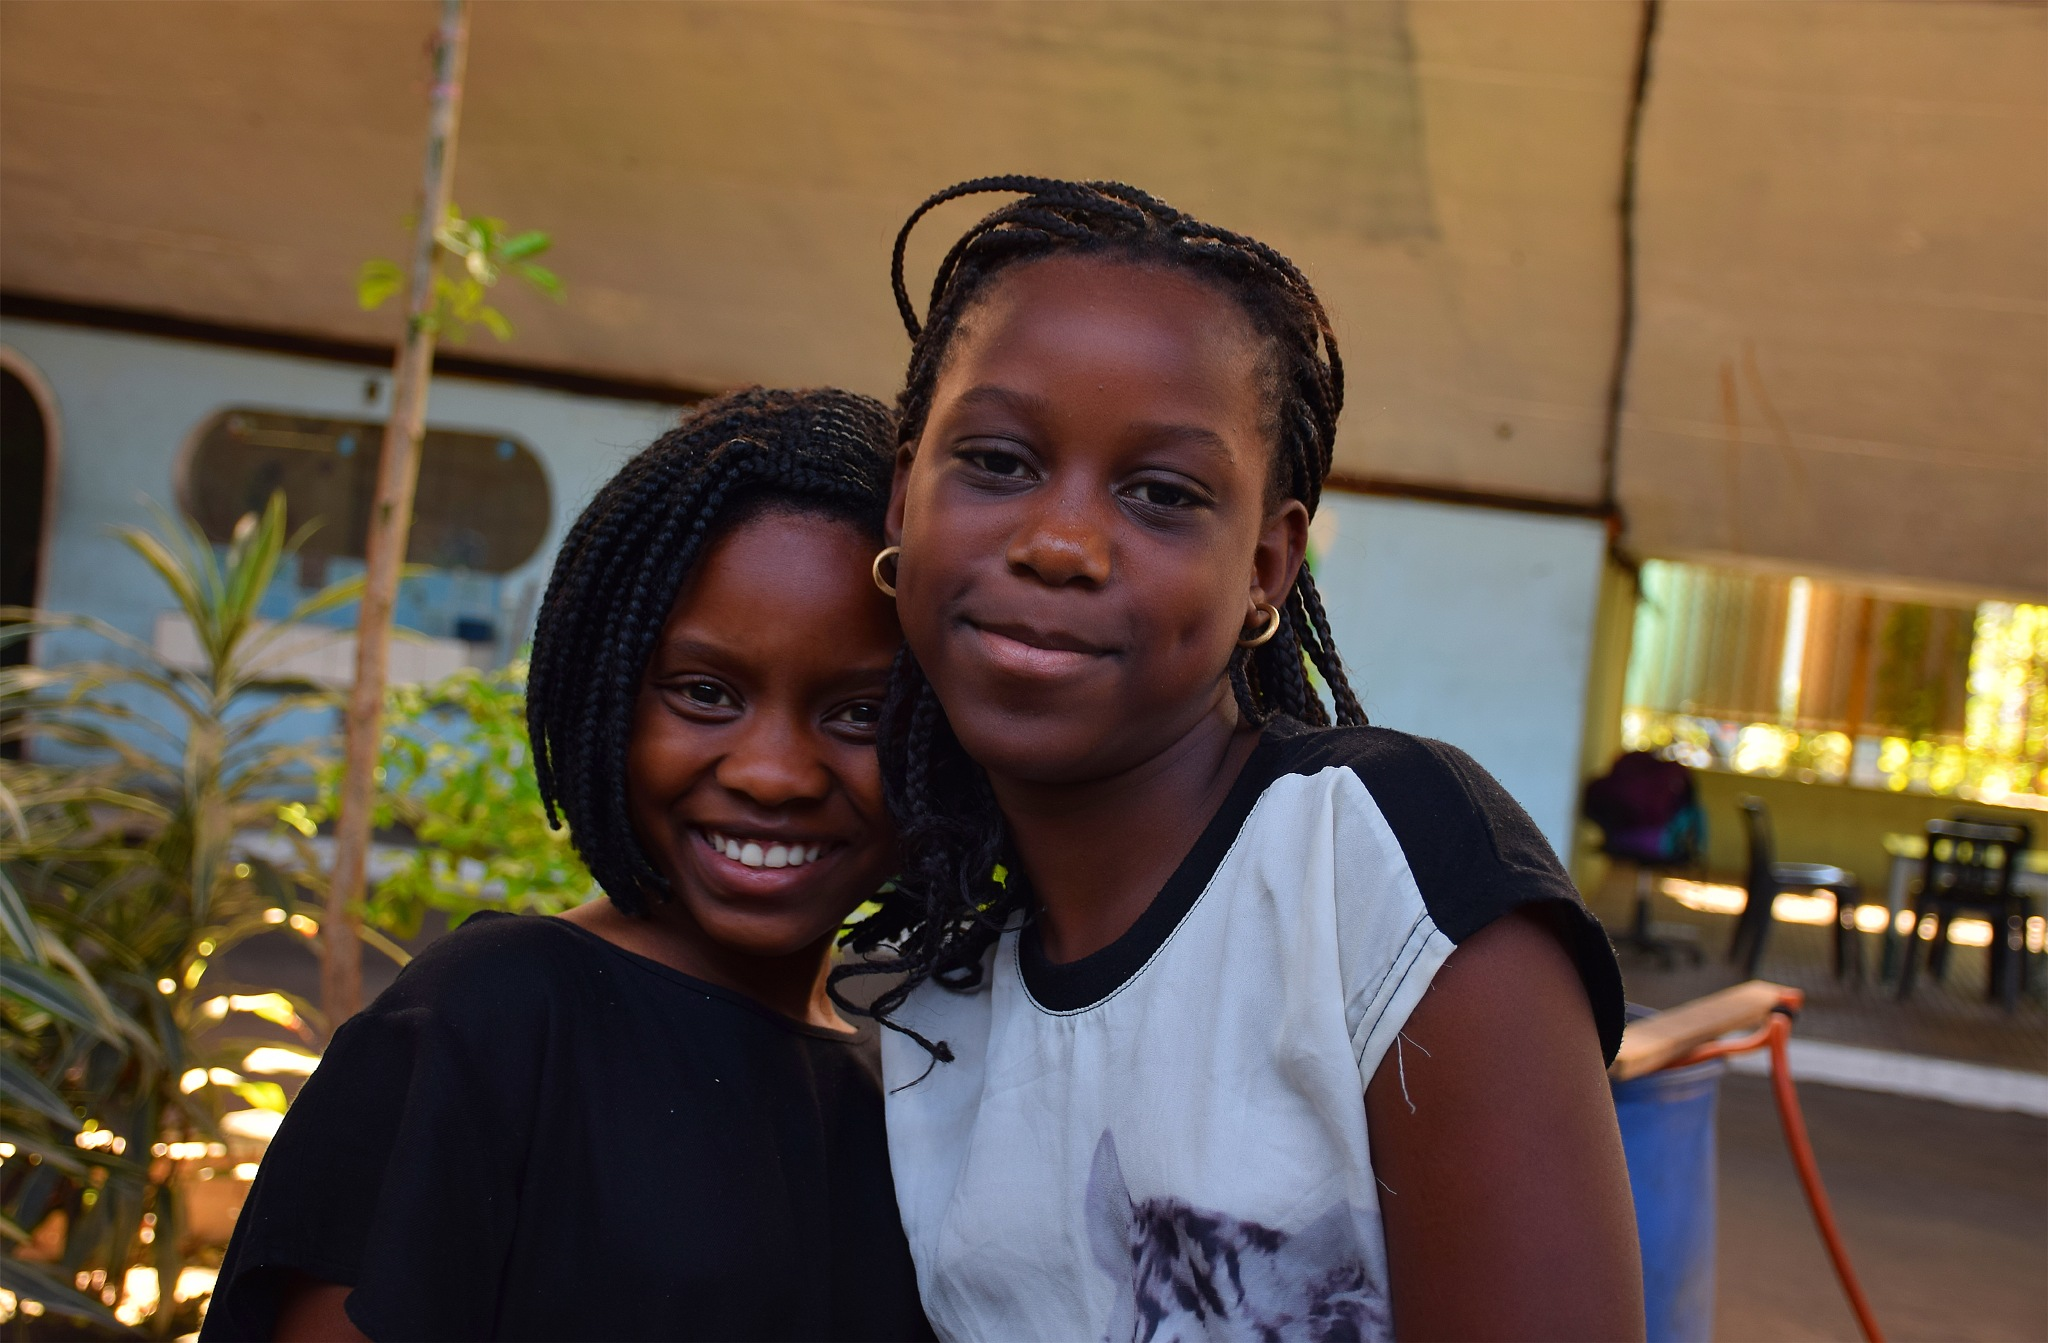 Geraldine (Namibia) & Astrida (Angola) by LuixCelso